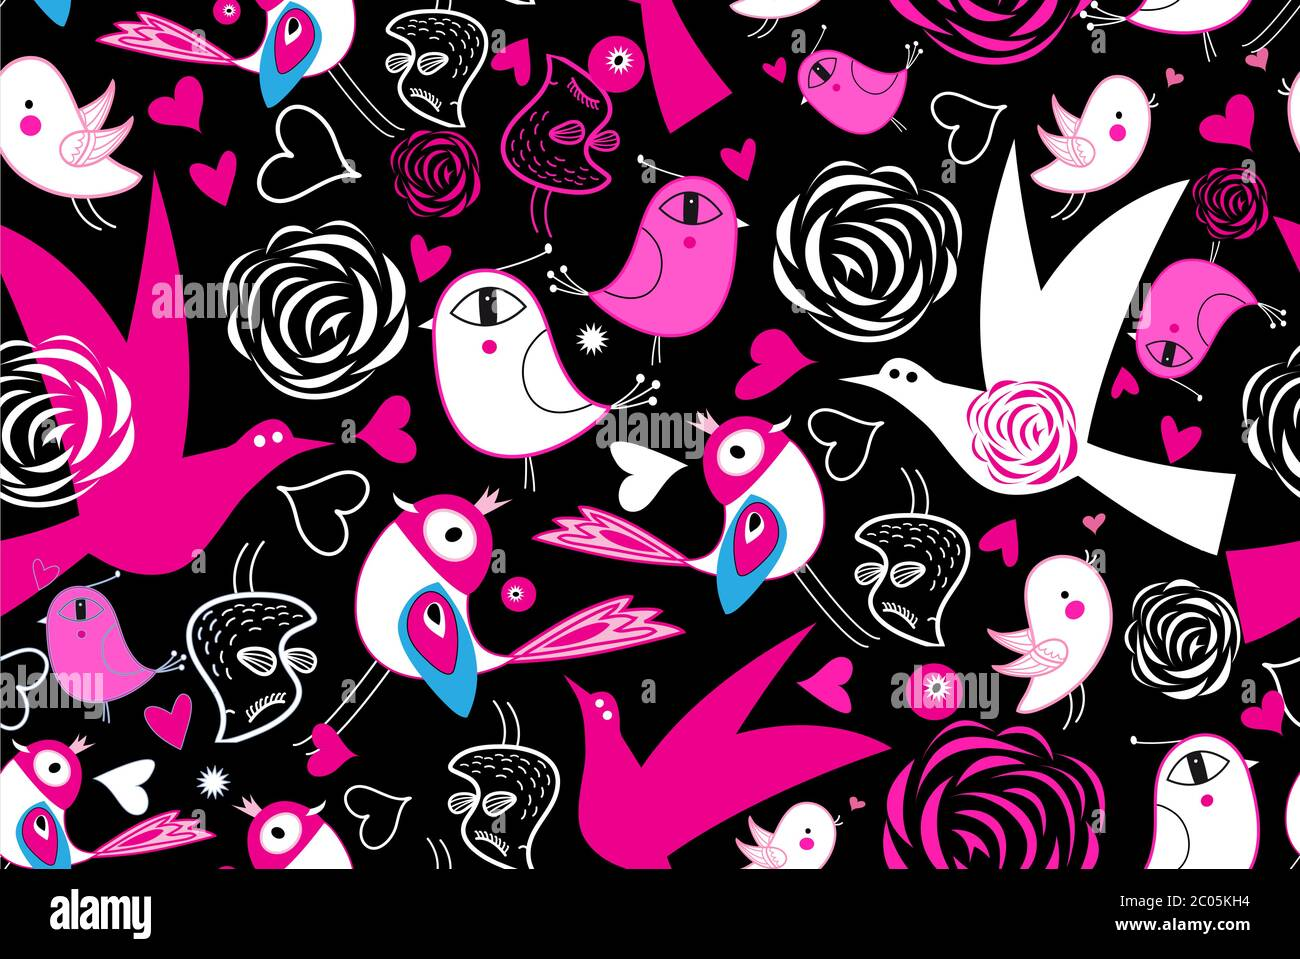 Seamless Bright Pattern With Love Birds On A Dark Background For Valentine S Day Template For Wallpaper Or Fabric Stock Vector Image Art Alamy